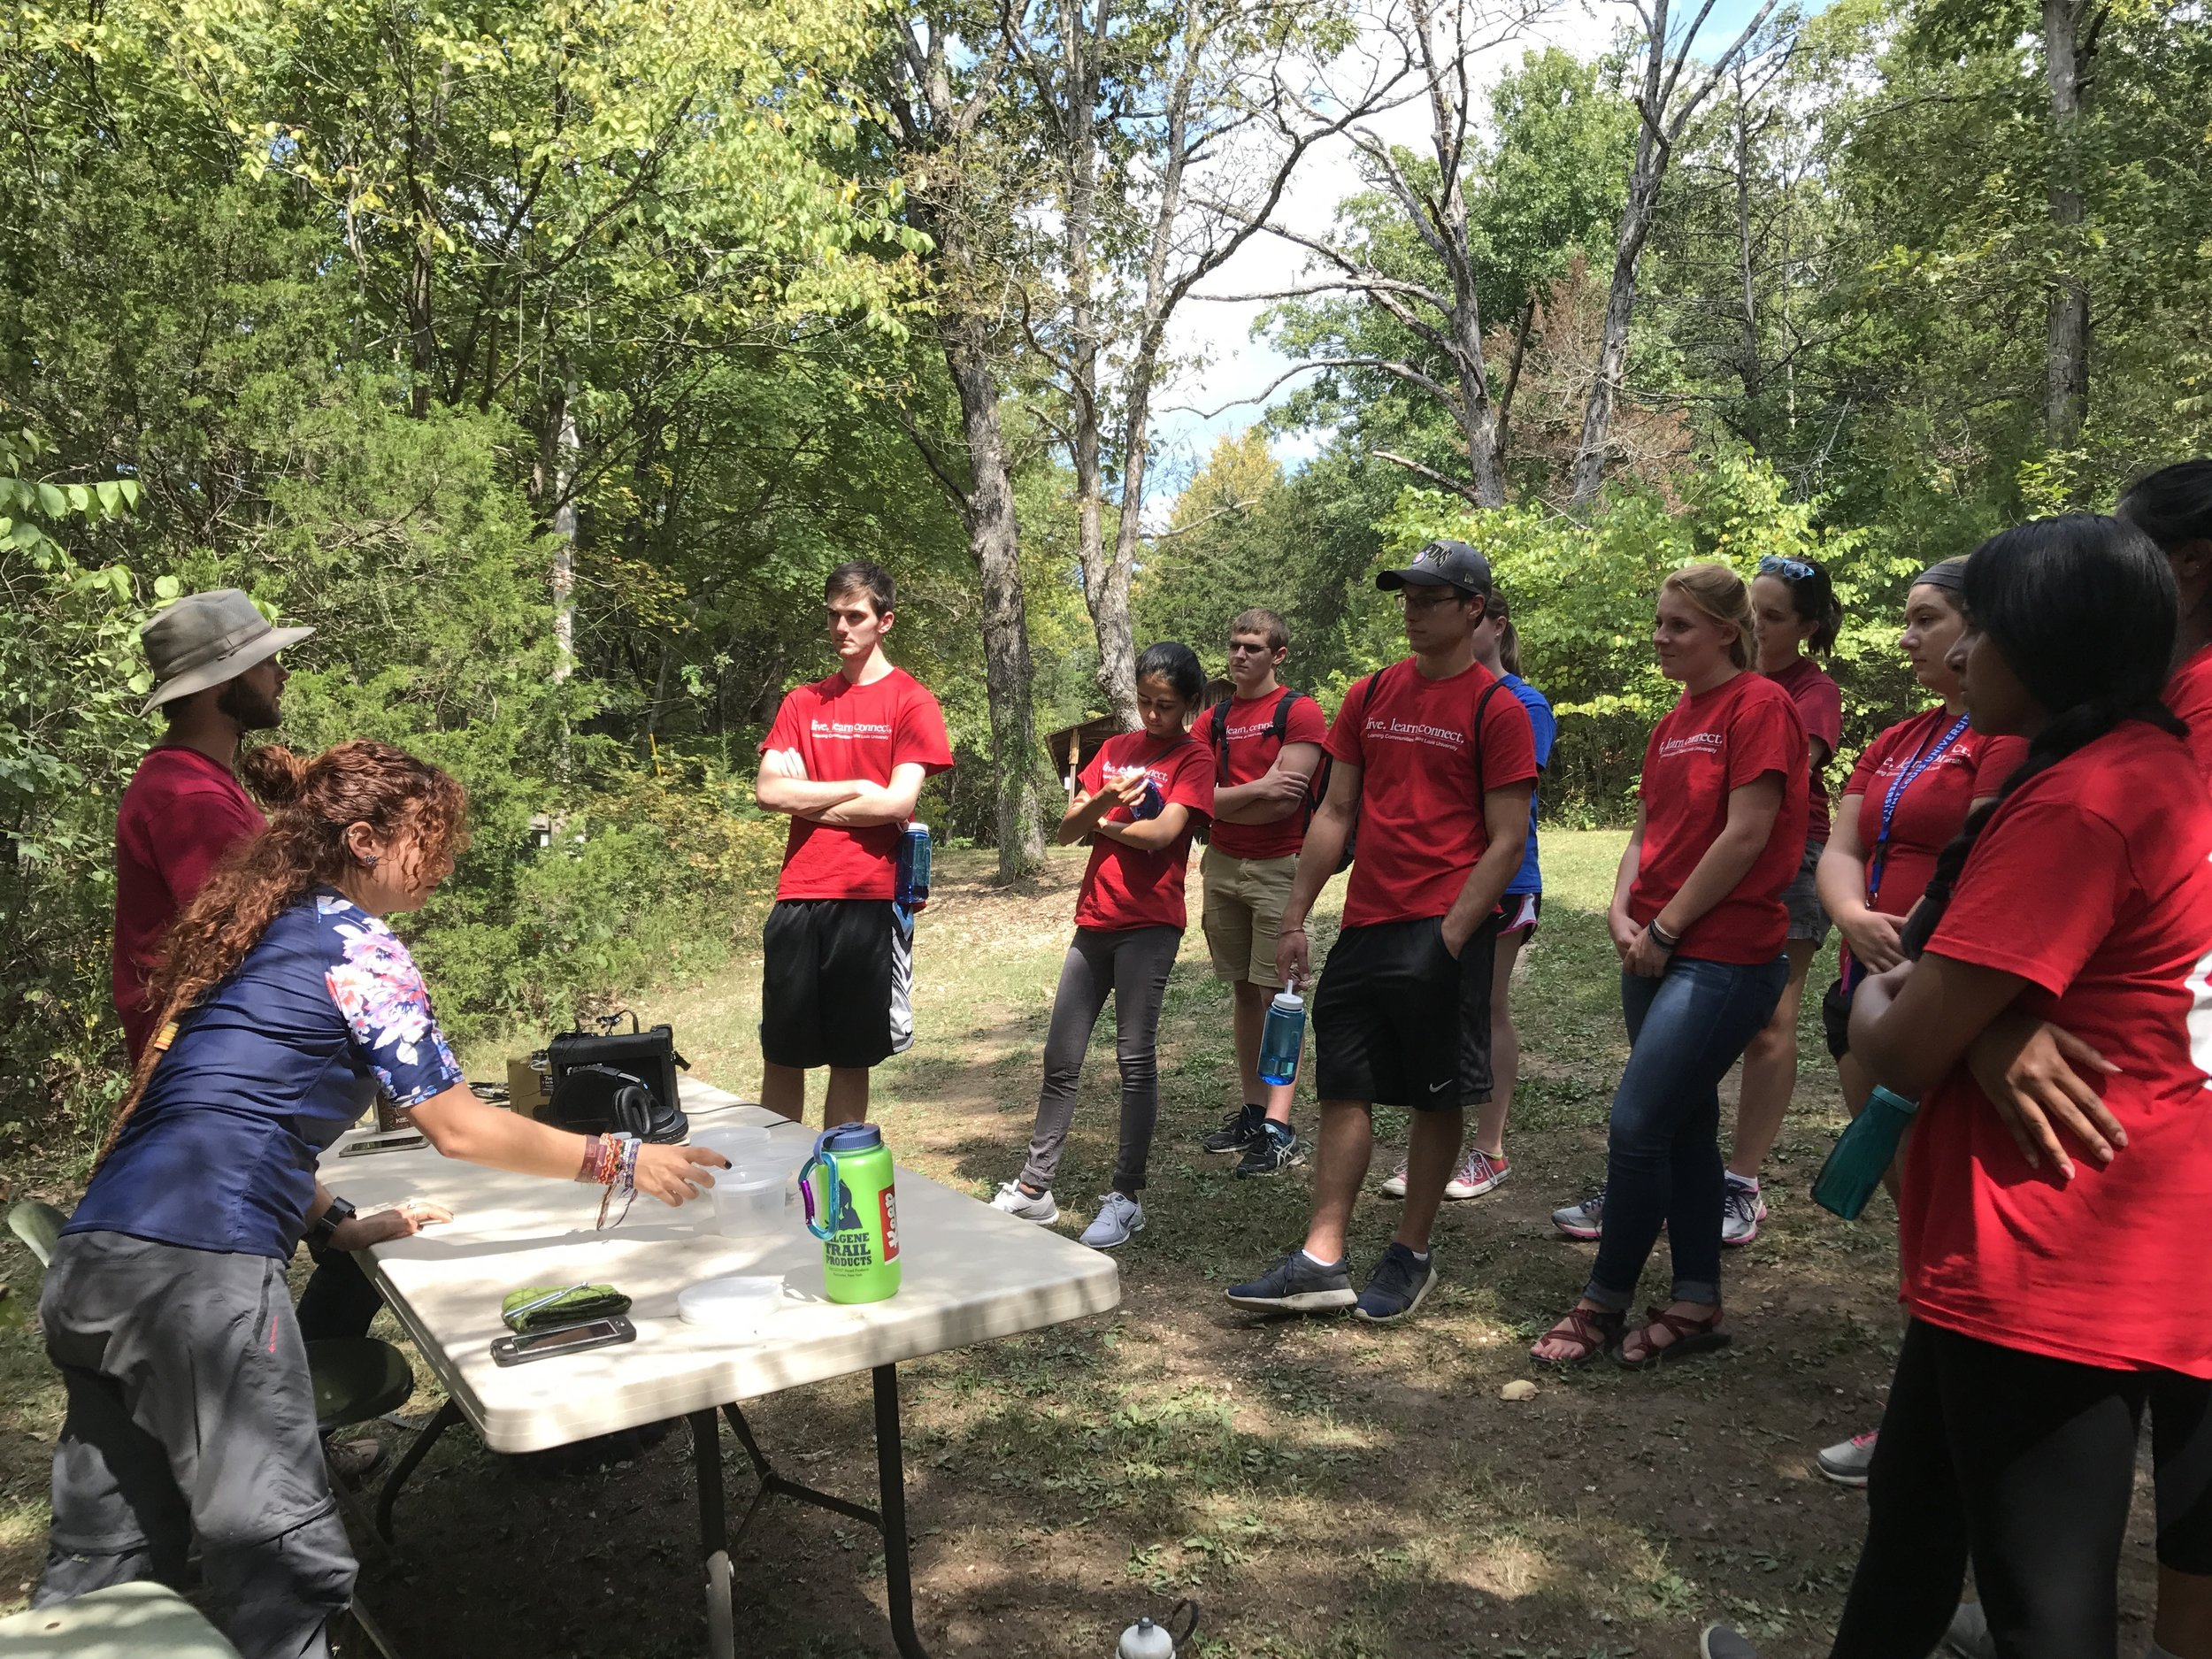 Graduate students William Shoenberger and Leticia Classen Rodriguez provide training to students and citizens participating in our annual BioBlitz in Forest Park; St. Louis, MO. The event teaches citizens to collect data on vertebrate and invertebrate biodiversity in the park.